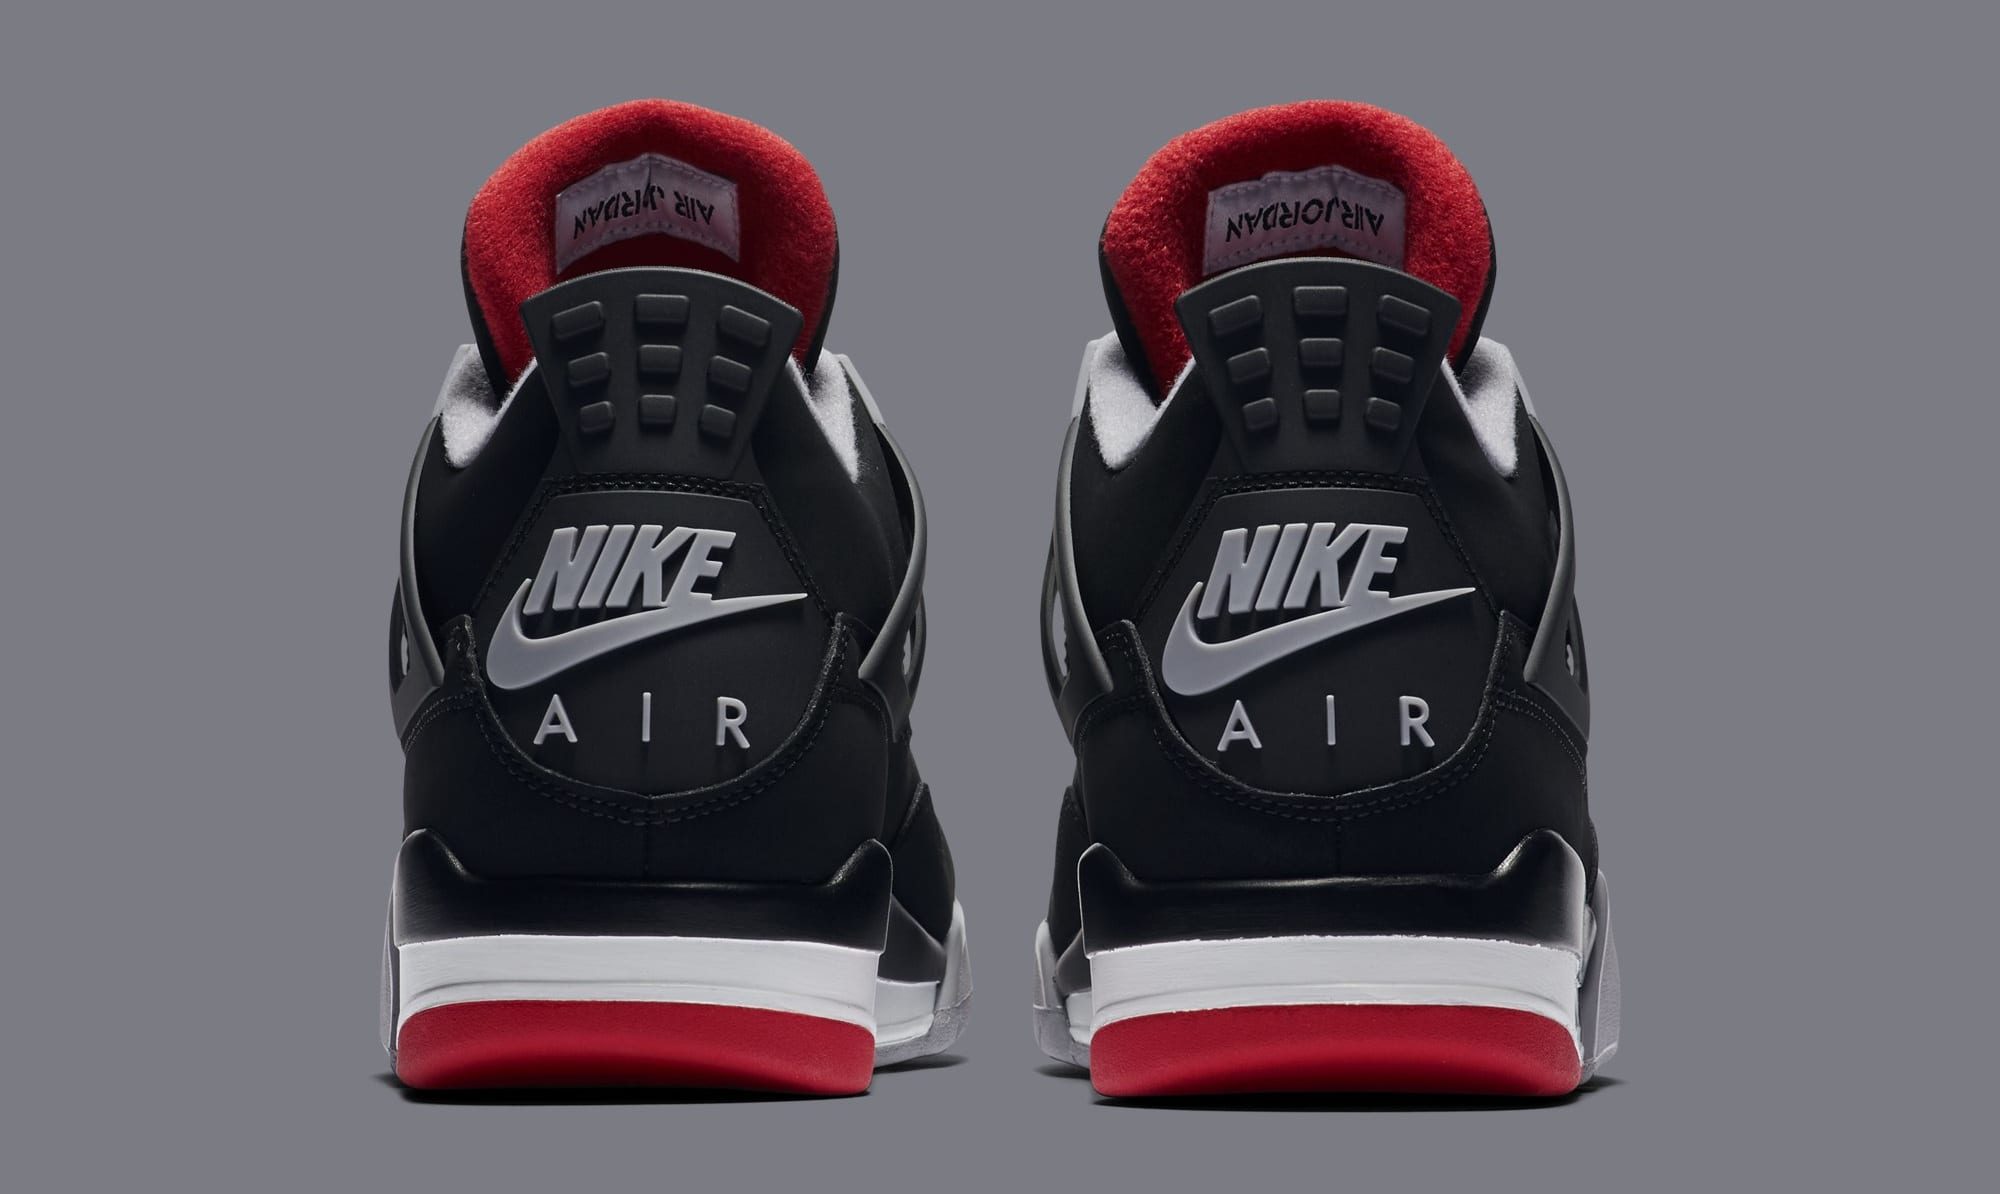 low priced 12c7d 9ba7c Image via Nike Air Jordan 4  Bred  308497-060 (Heel)